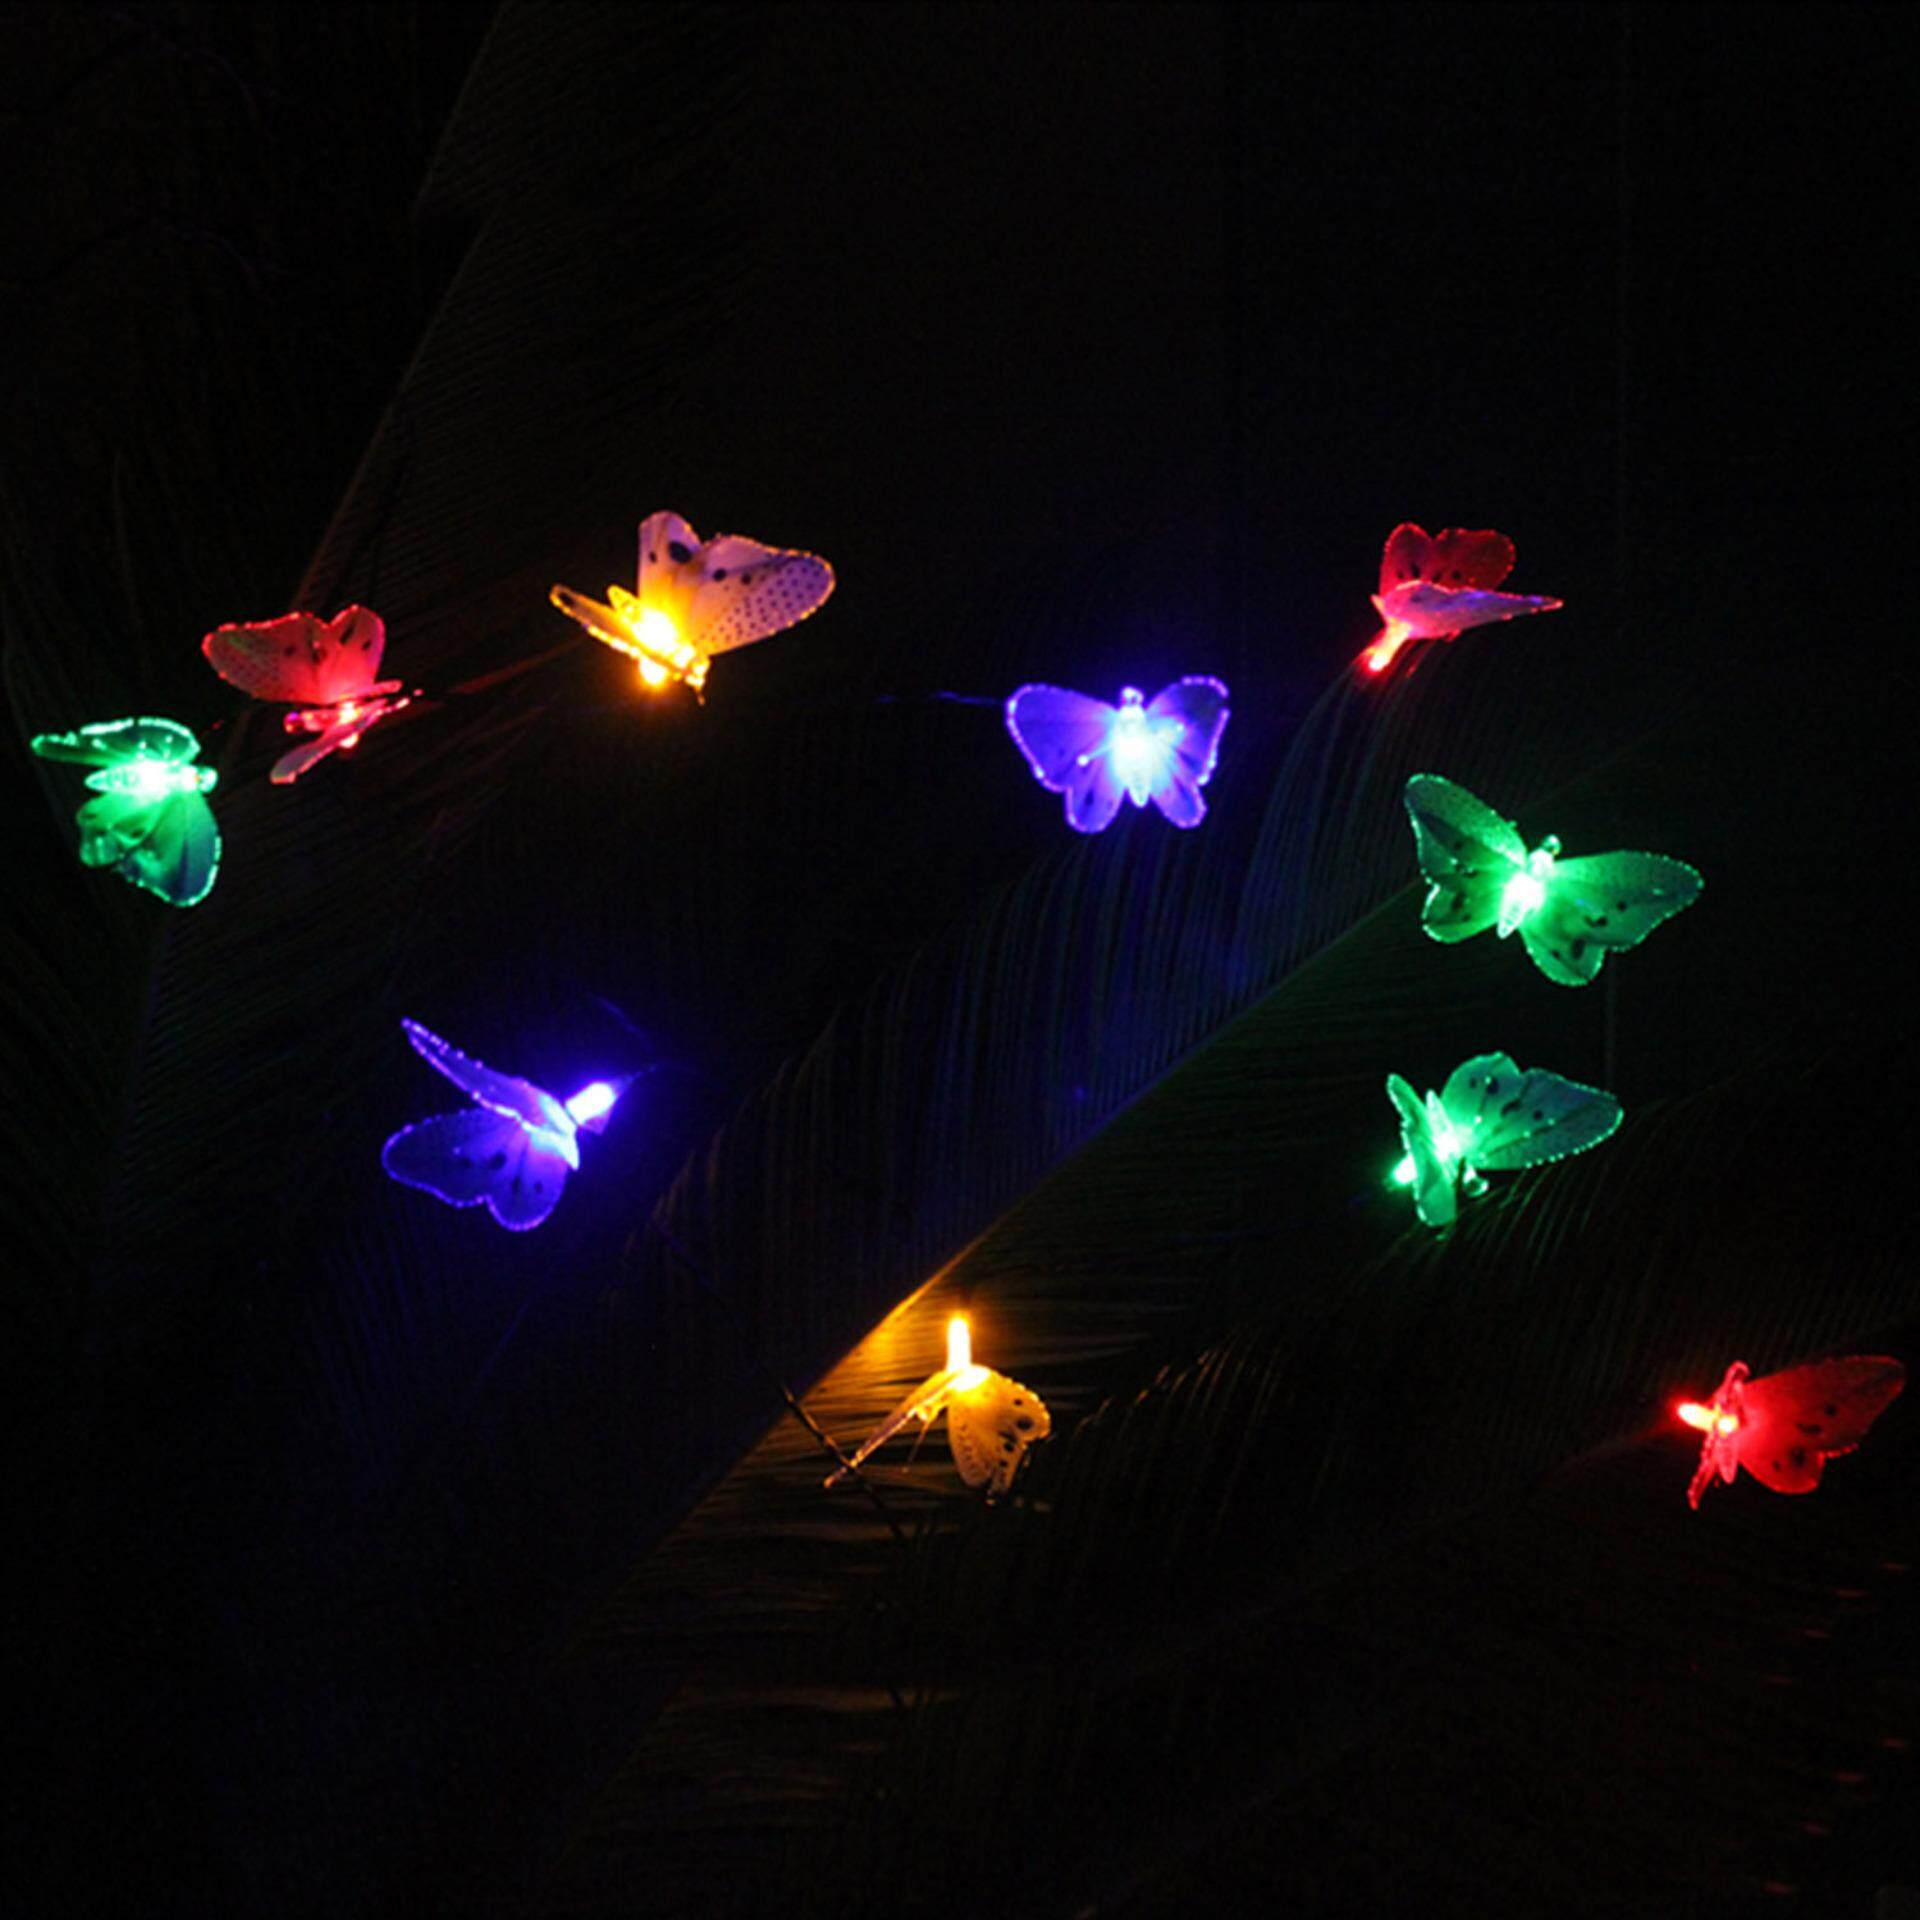 boost lights these string outdoor christmas ideas your openphoto wonderful lighting phenomenal decorative minimalist with size room for ceiling model decor home